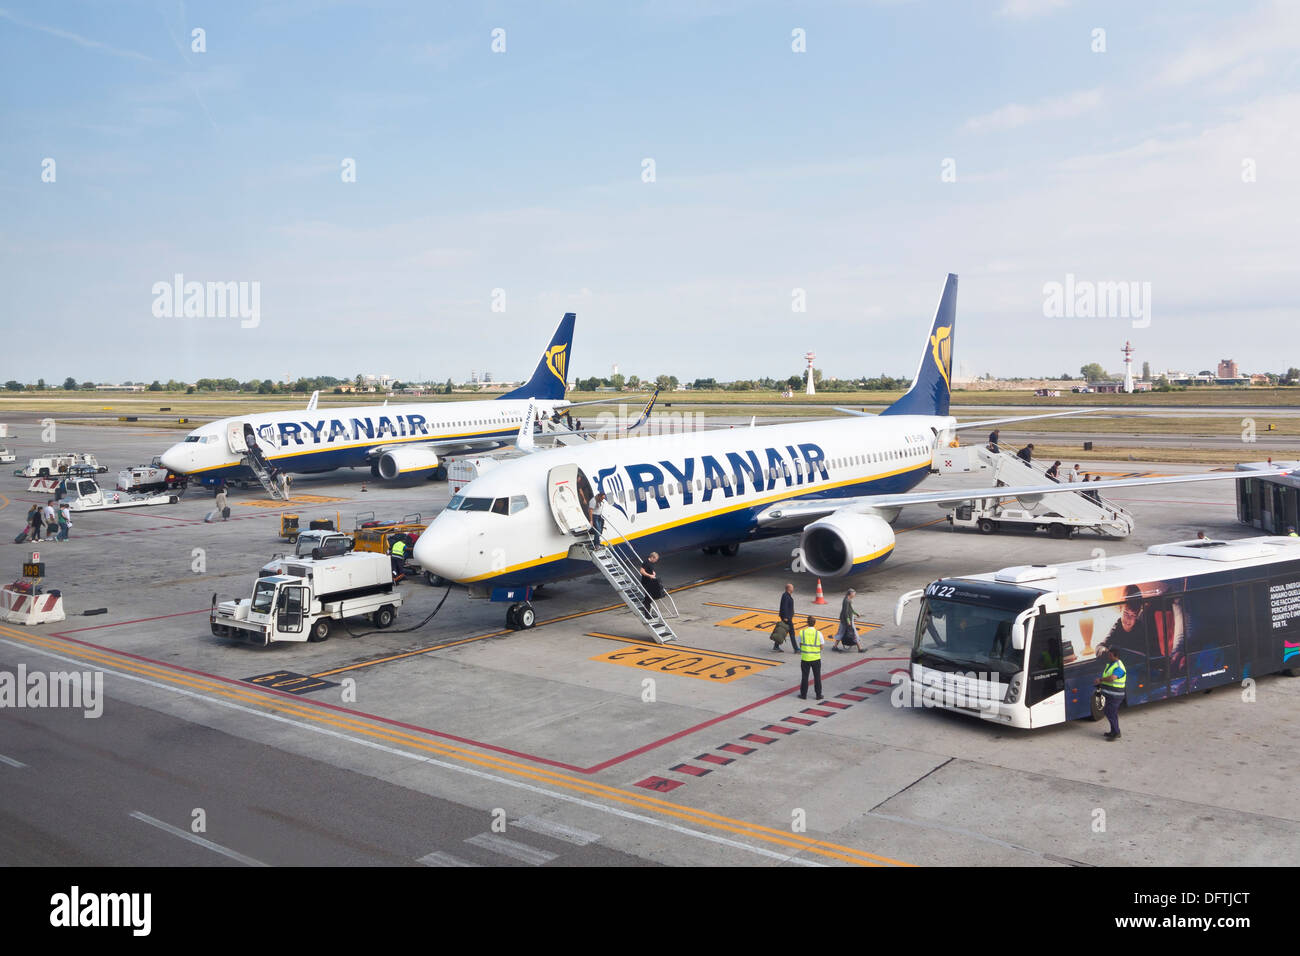 Ryanair airplanes at Bologna airport, Italy - Stock Image